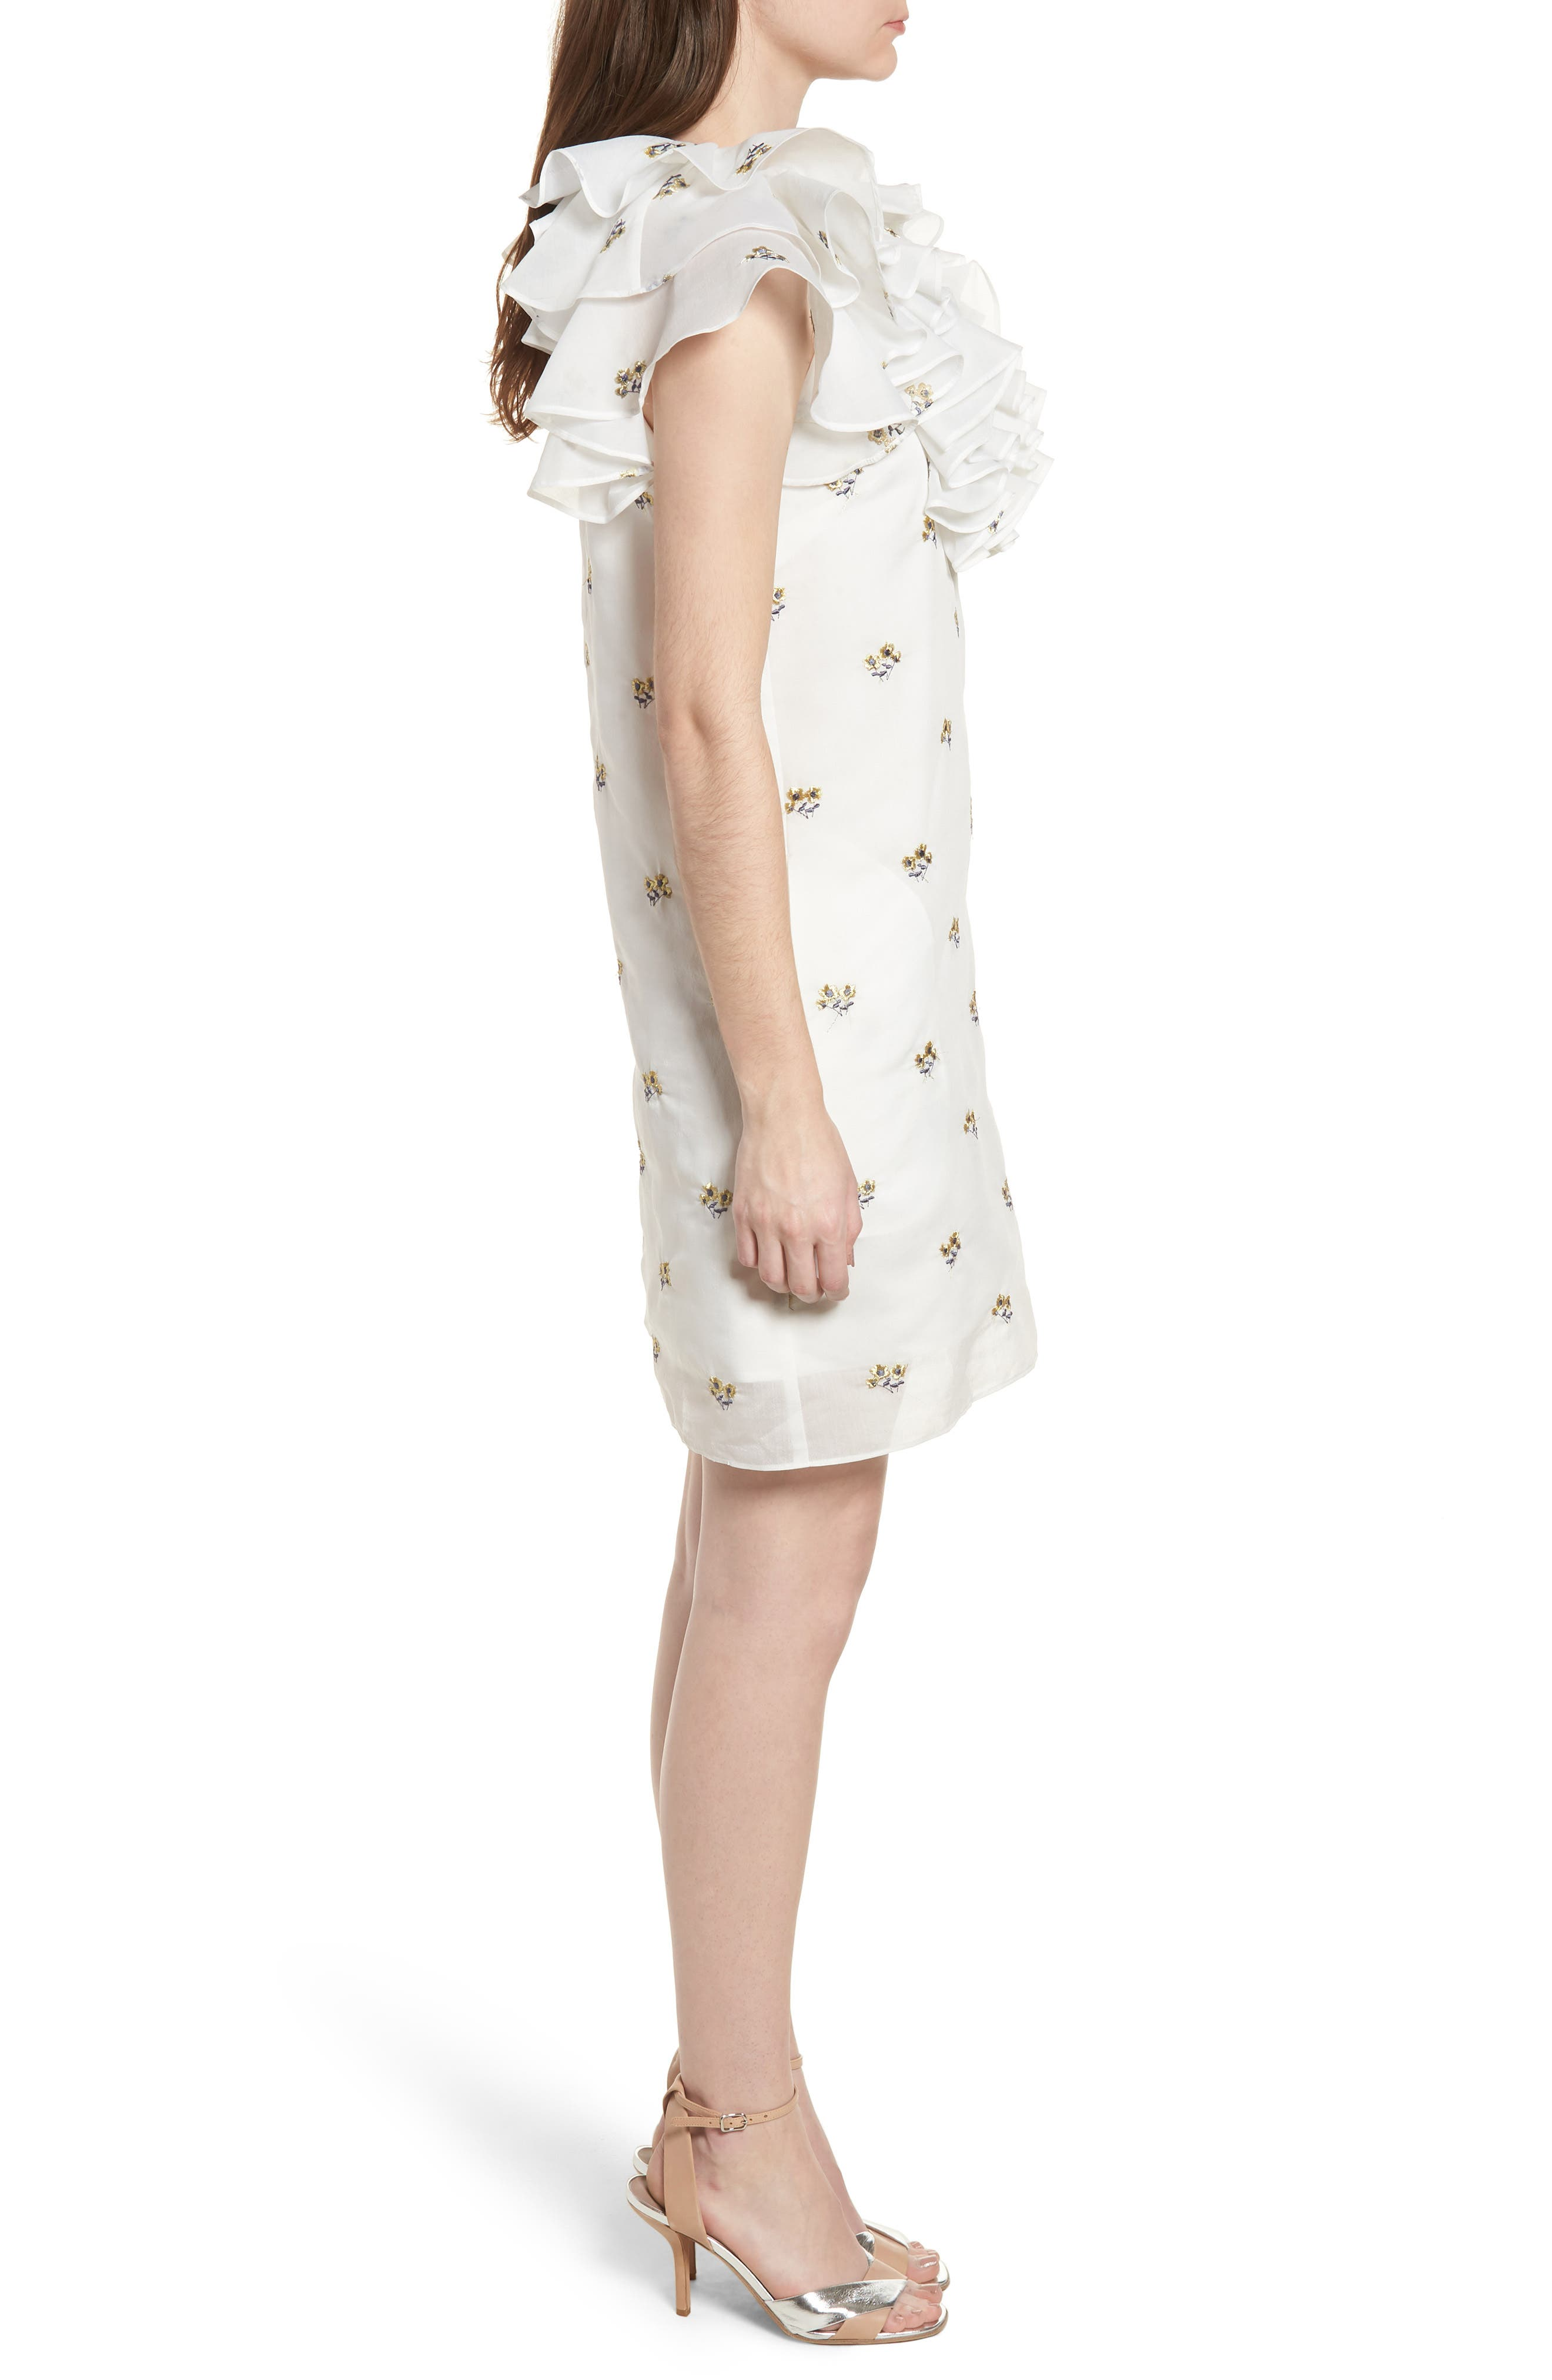 Theseus Embroidered Ruffle Dress,                             Alternate thumbnail 3, color,                             White